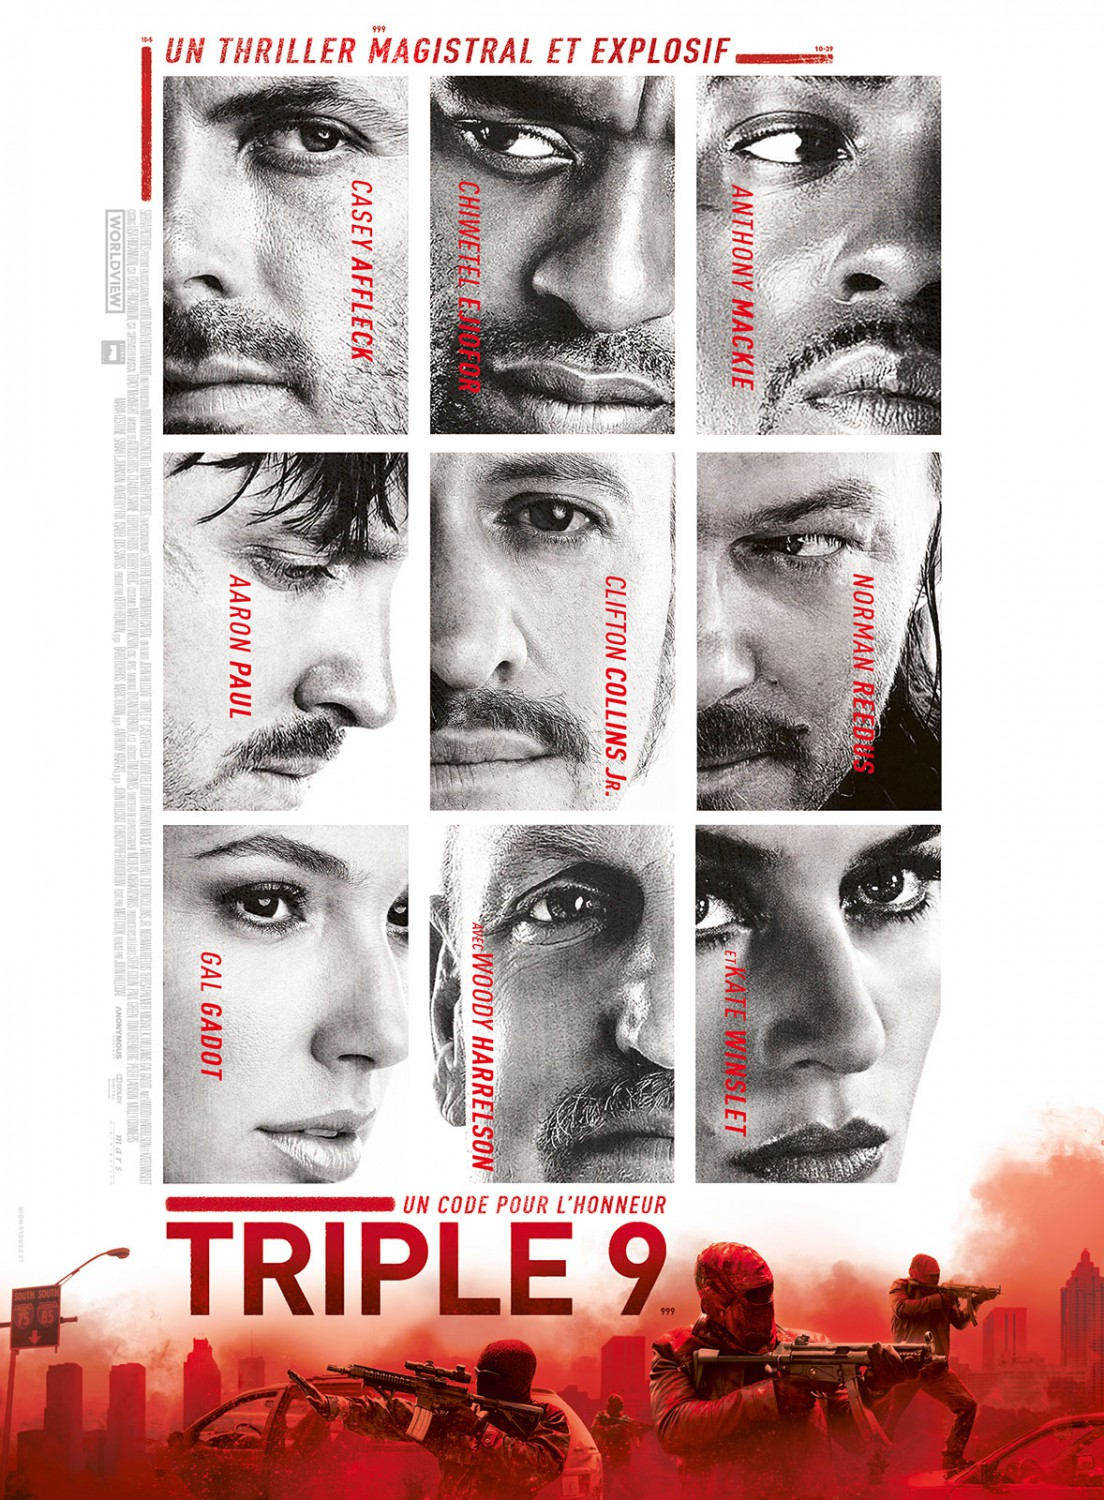 New Characters Posters For 'Triple 9' - blackfilm.com/read ... Kate Winslet Imdb